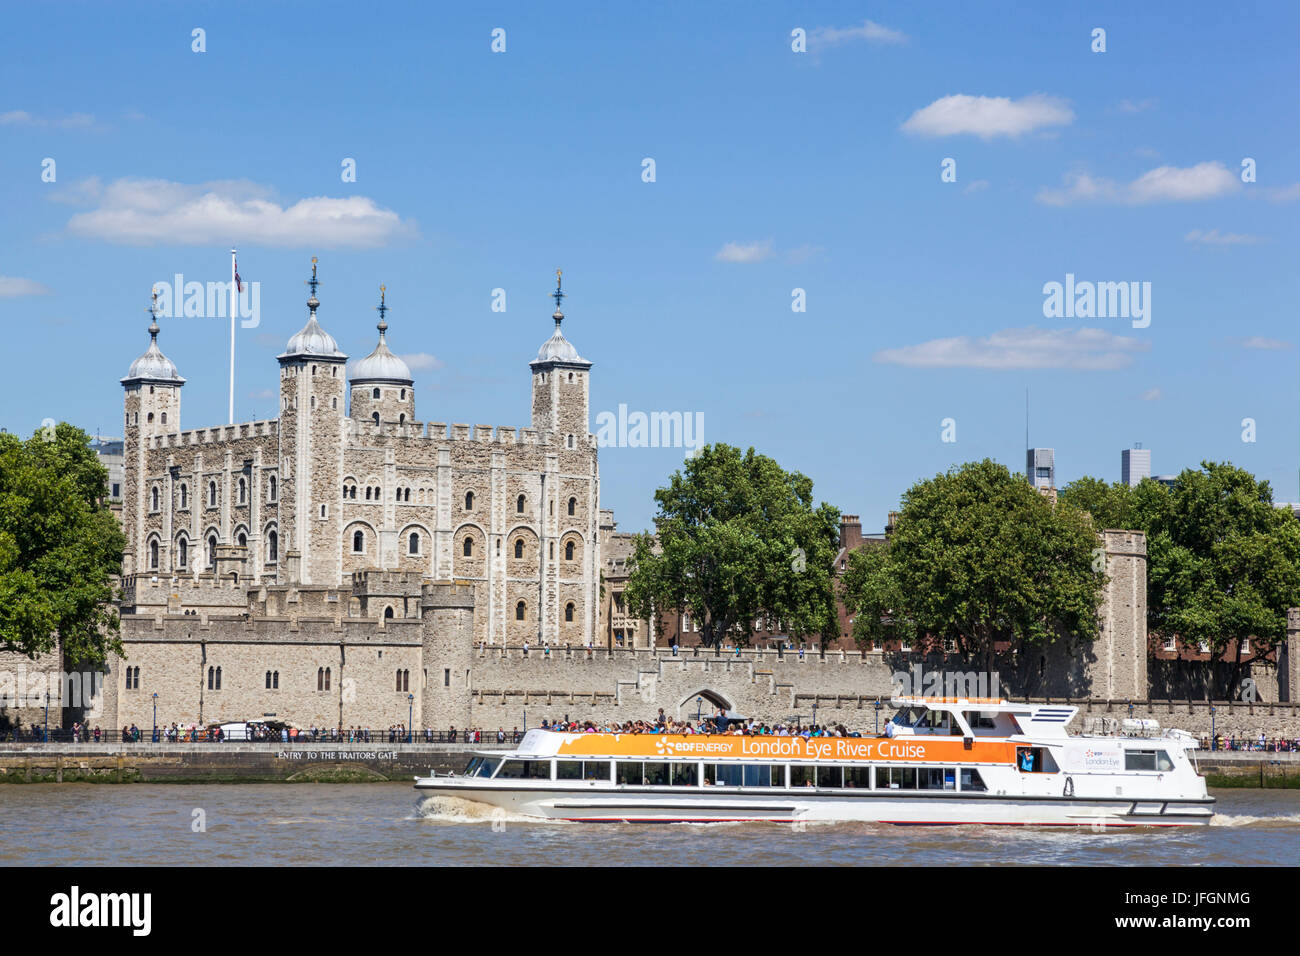 England, London, Tower of London and Thames River Cruise Boat - Stock Image